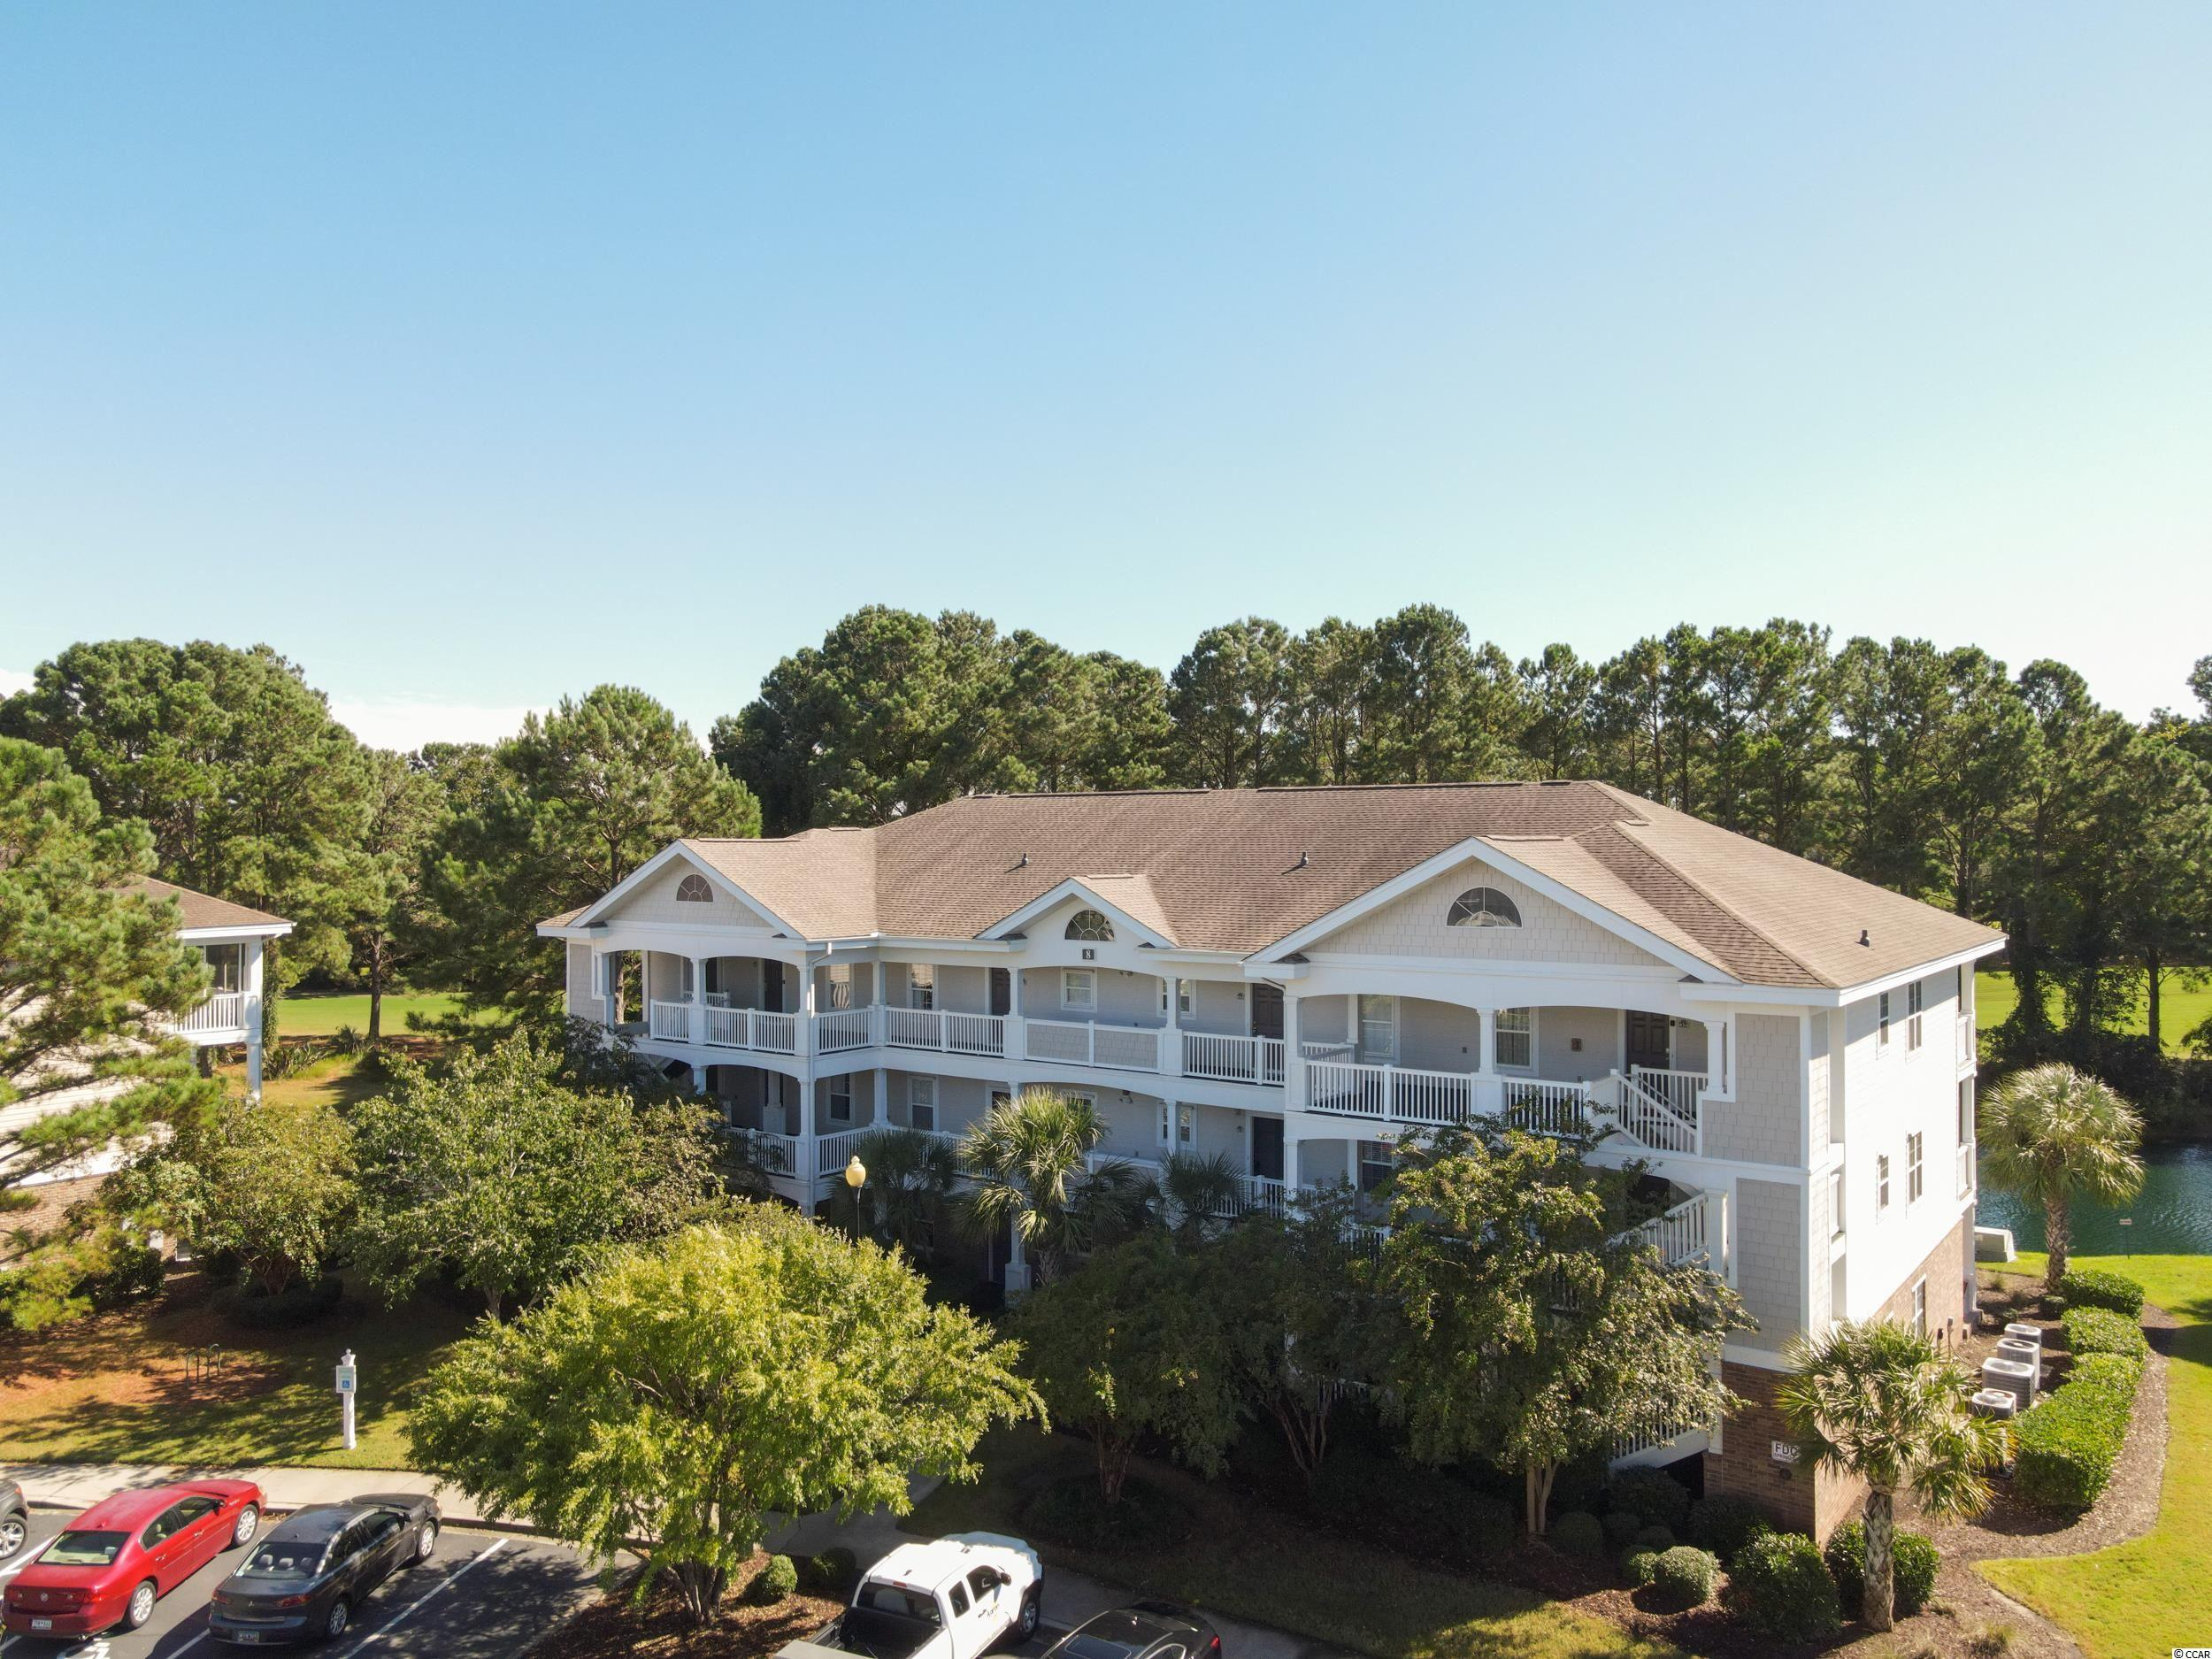 You won't want to miss seeing this beautiful Top Floor, 2BR/2BA condo located in the gated community of River Crossing - Barefoot Resort! This unit in building 8 has some of the BEST VIEWS in all of Barefoot and comes fully furnished! The balcony overlooks a beautiful pond with fountain as well as Hole #4 of the Greg Norman Course! The kitchen is updated with granite countertops, stainless steel kitchen appliances, and has a pantry. The great room offers vaulted ceilings, a spacious dining area, and open living room with lots of natural light. The master bedroom offers two closets including a walk in closet, en-suite bathroom, and 3 windows which overlook the pond and golf course! The guest bedroom offers privacy and is in close proximity with the second full bathroom. The condo unit offers a stackable washer and dryer, additional storage on the balcony, and a utility closet. River Crossing at Barefoot Resort offers lots of amenities including gated access, a community pool, access to a resort style pool on the waterway, access to the oceanfront cabana and parking, and a low HOA! Barefoot Resort is a premiere resort located just 2 miles to the ocean and close to many area attractions including Barefoot Landing, 4 professionally designed golf courses, and much more.